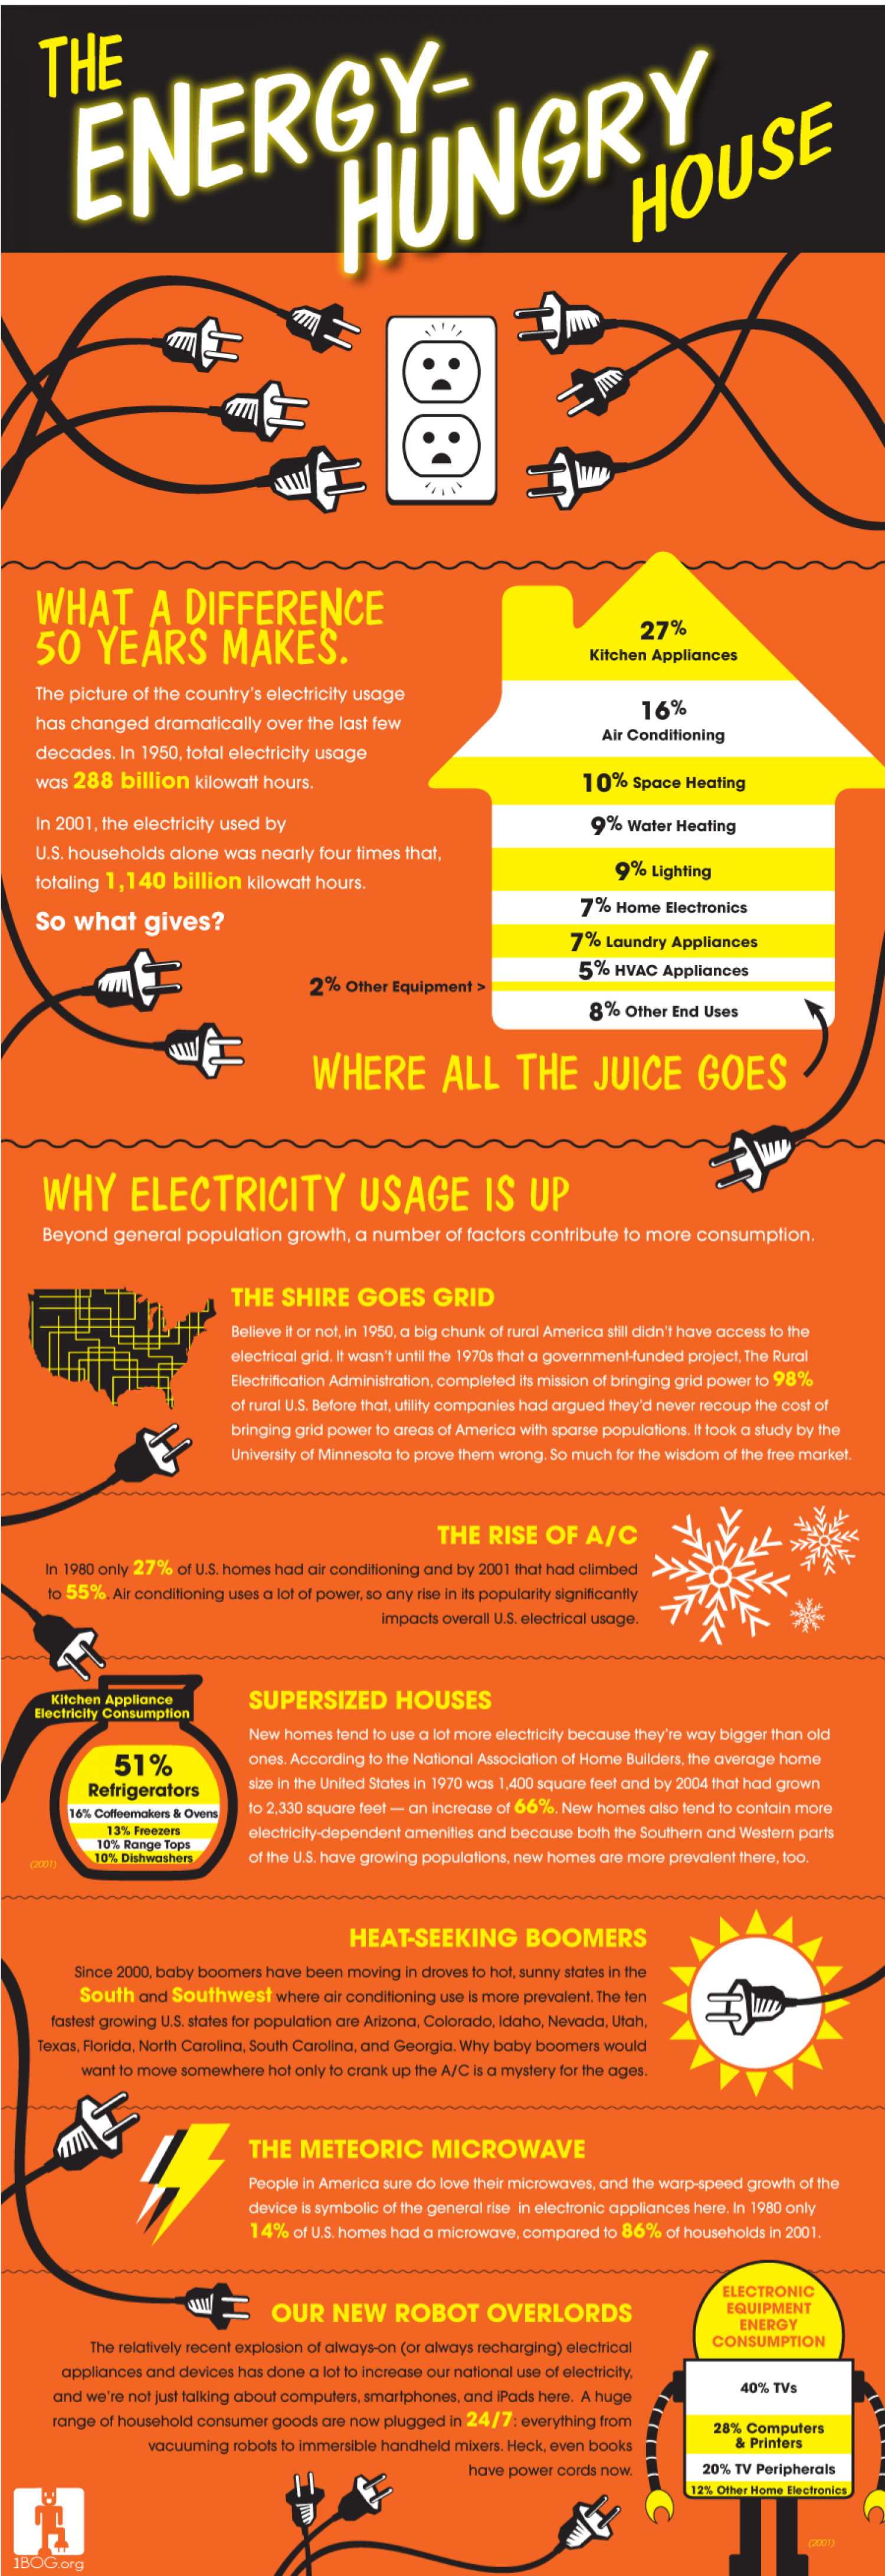 The Energy-Hungry House Infographic